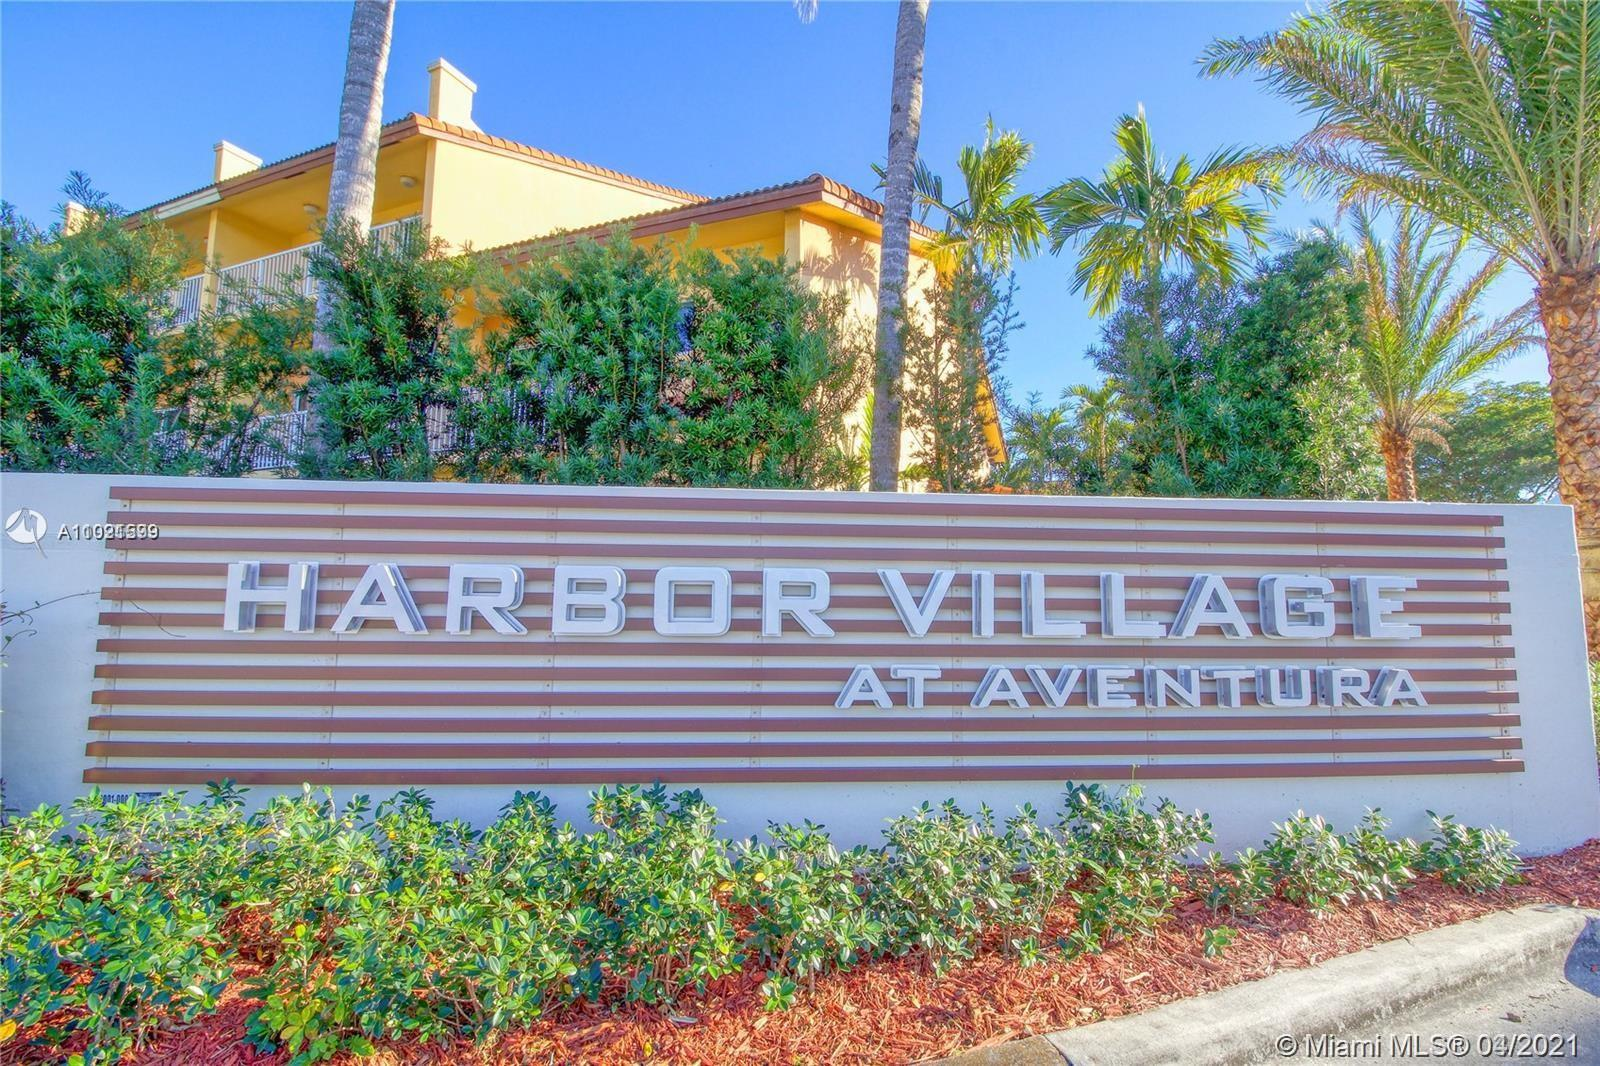 MAJOR PRICE REDUCTION. AMAZING TRI- LEVEL TOWNHOUSE IN GATED WATERWAYS SECTION OF AVENTURA. MOST DESIRABLE RENOVATED CAPRI MODEL IN MARINA COVE. 4 BED 3.5 BATH TOWNHOME 2646SF. KITCHEN W/ GRANITE COUNTER TOPS AND STAINLESS STEEL APPLIANCES. DINING AND LIVING ROOM ON MAIN LEVEL. PRIVATE BDR & BATH ON FIRST LEVEL. CAN BE USED AS INLAWS QUARTERS. MARINA COVE FEATURES AN UPSCALE FAMILY STYLE LIVING. QUIET COMMUNITY WITH GREAT NEIGHBORS. JUST STEPS AWAY FROM THE WATERWAY MARINA, GUEST PARKING AND PRIVATE VIEW OF THE POOL. GREAT LOCATION CLOSE TO AVENTURA MALL, WALK TO WHOLE FOODS MARKET & TARGET SUPER STORE. NEW CITY OF AVENTURA CHARTER HIGH SCHOOL IS PLANNED WITHIN WALKING DISTANCE. PET FRIENDLY, CLOSE TO AVENTURA PARKS, SUNNY ISLES BEACH AND GULFSTREAM SHOPS. BRING OFFERS.